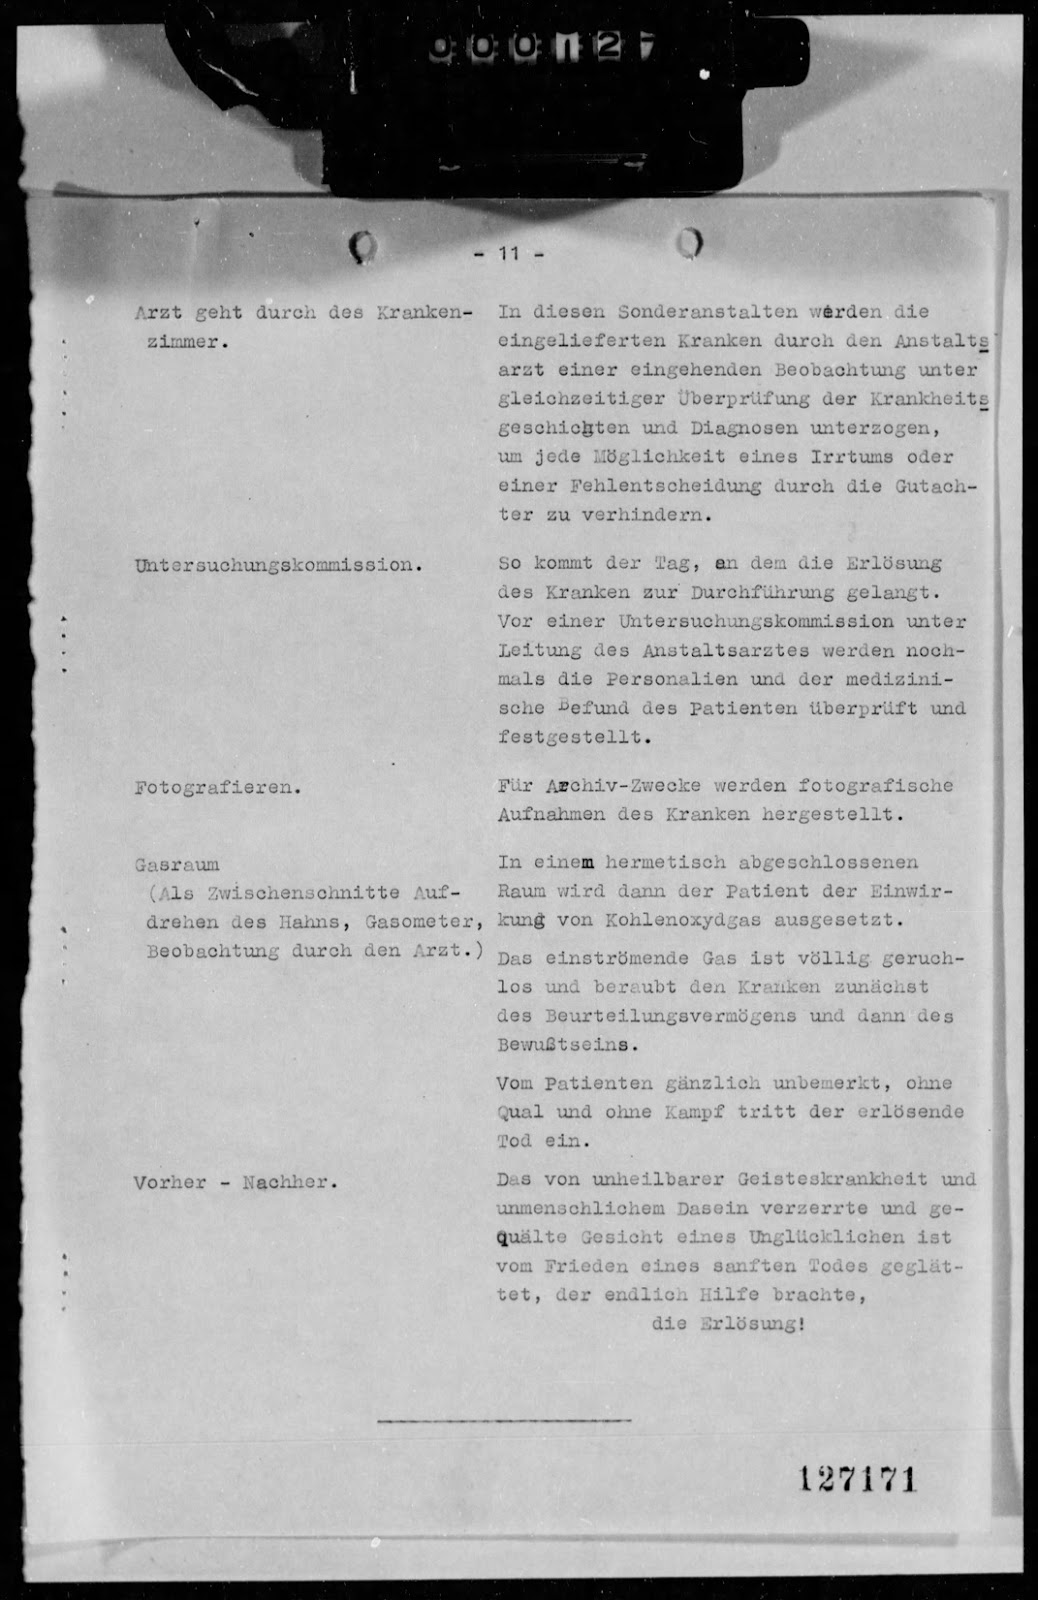 Holocaust Controversies: Contemporary German Documents on